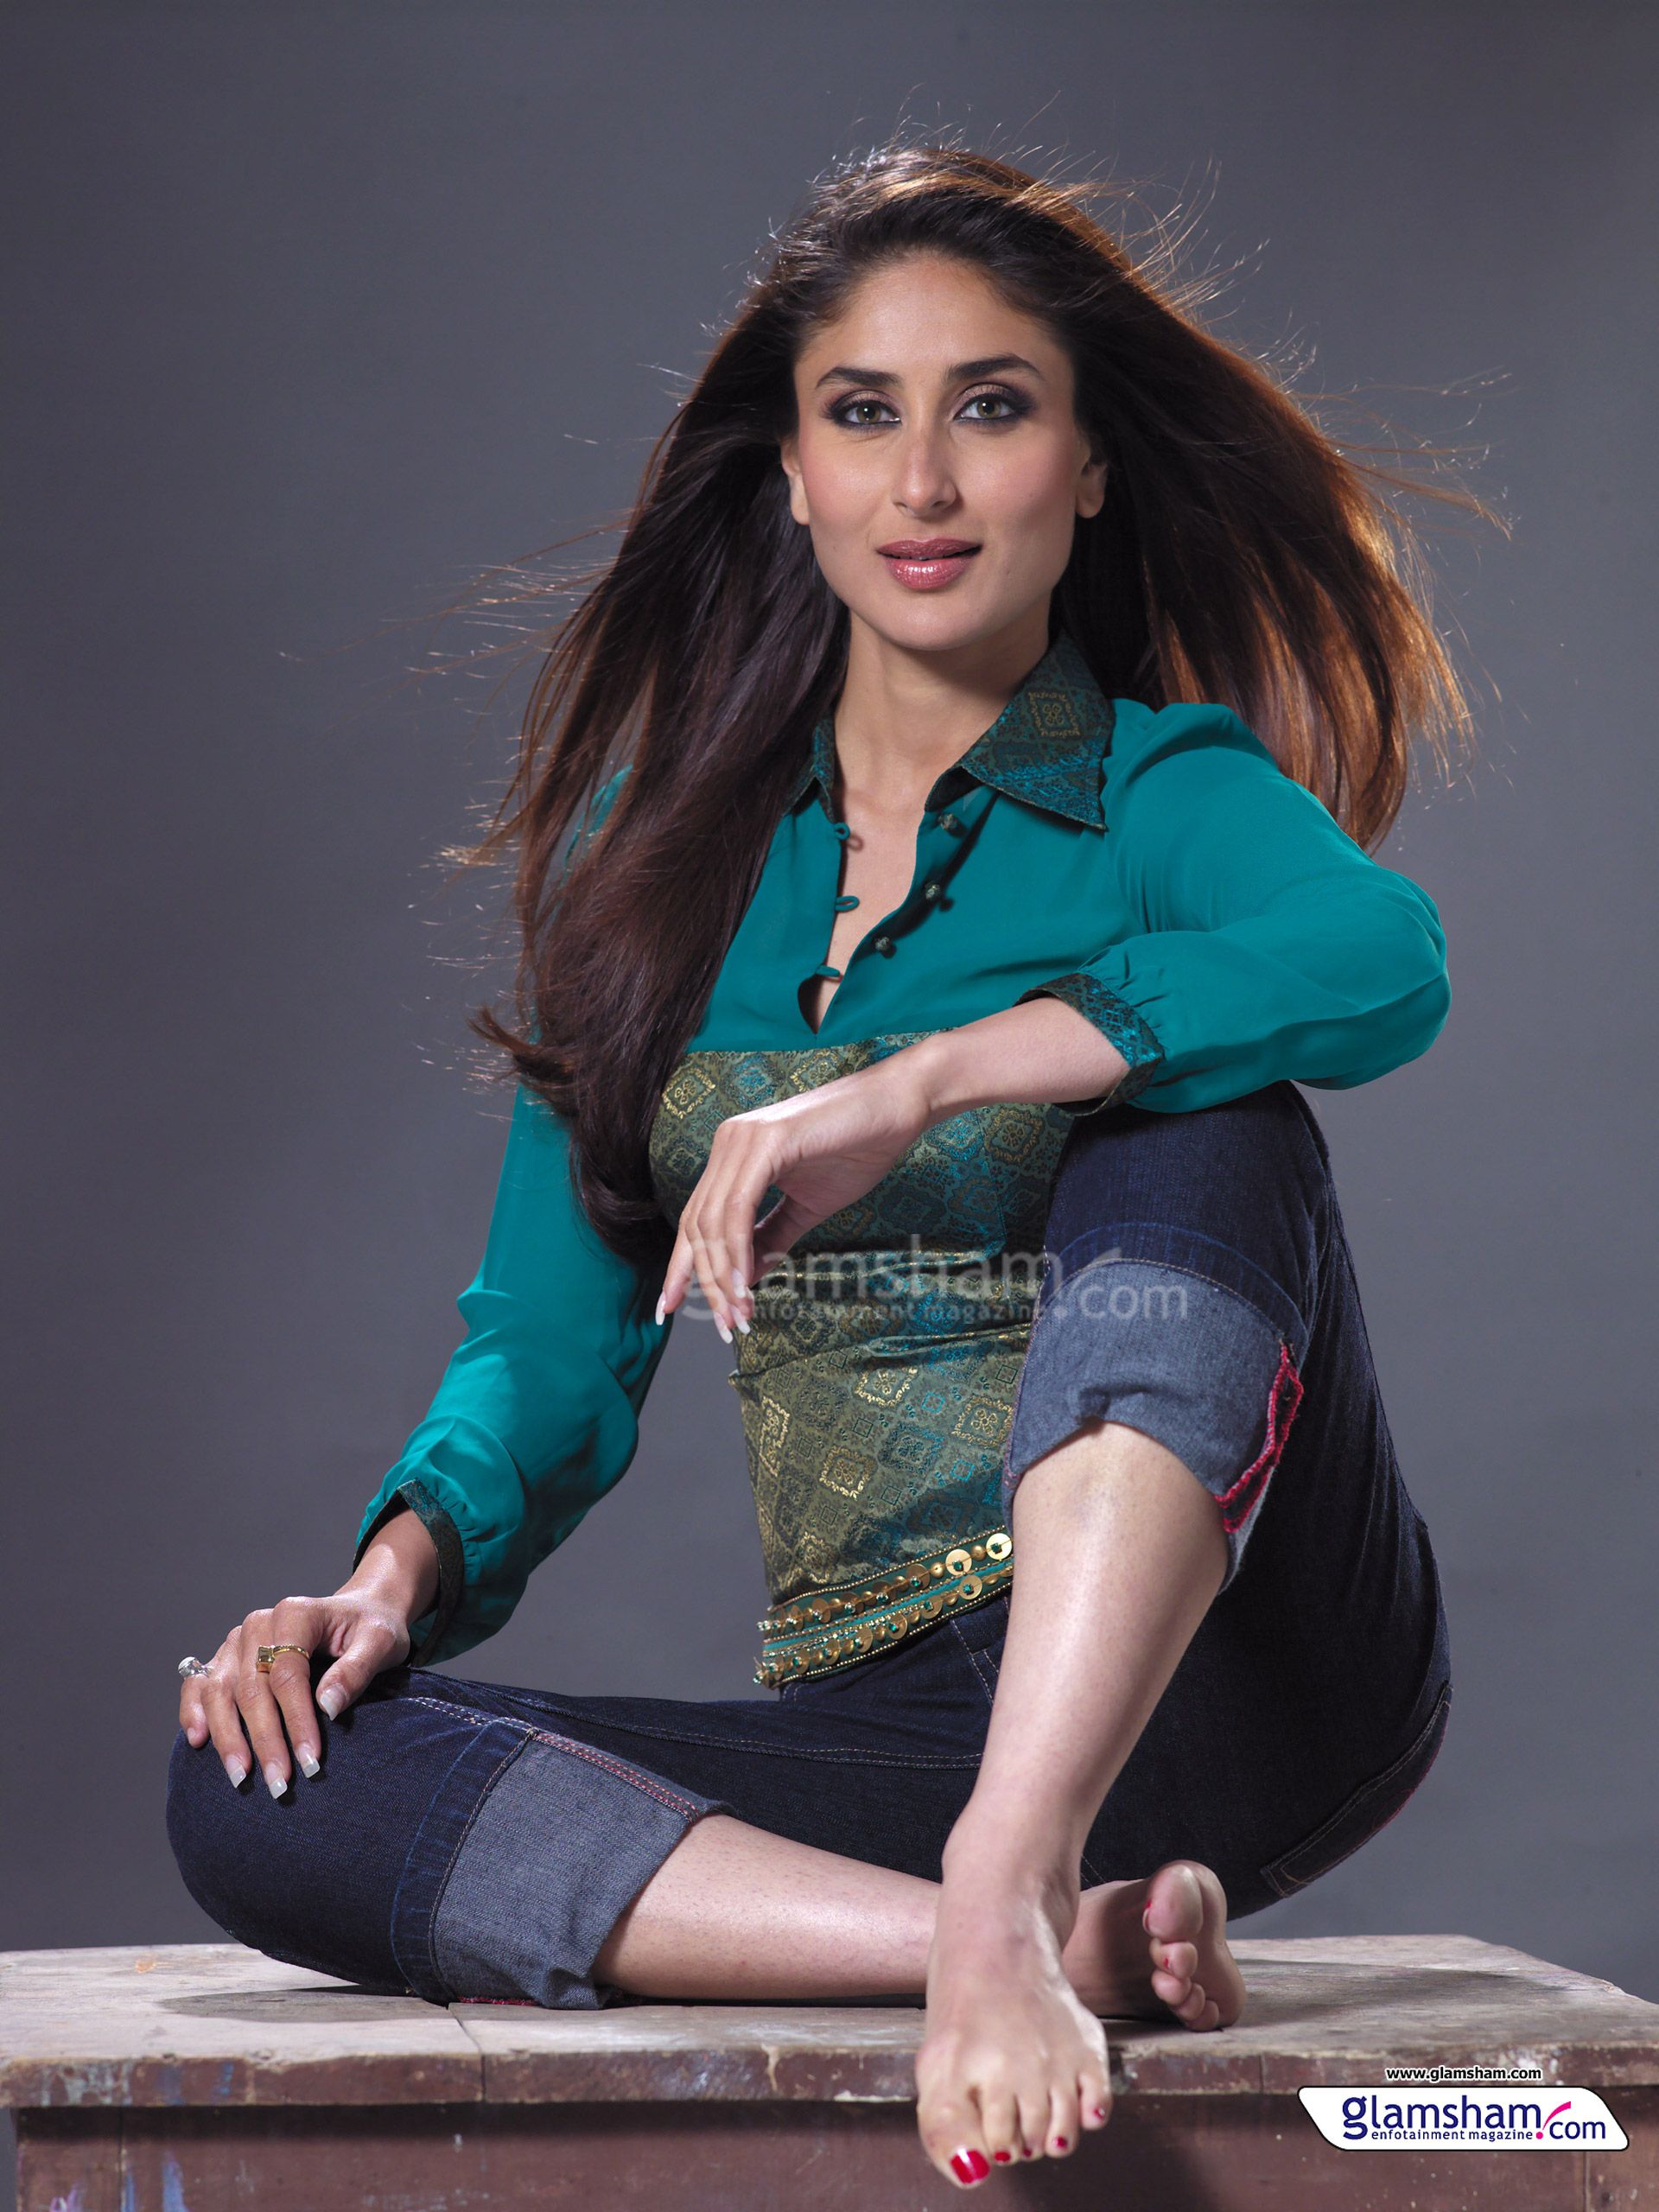 kareena kapoor klipkareena kapoor baby, kareena kapoor filmi, kareena kapoor saif ali khan, kareena kapoor khan, kareena kapoor 2017, kareena kapoor biography, kareena kapoor mp3, kareena kapoor films, kareena kapoor son, kareena kapoor biografia, kareena kapoor child, kareena kapoor kimdir, kareena kapoor klip, kareena kapoor family, kareena kapoor filmleri, kareena kapoor filmography, kareena kapoor performance, kareena kapoor and husband, kareena kapoor wiki, kareena kapoor and salman khan